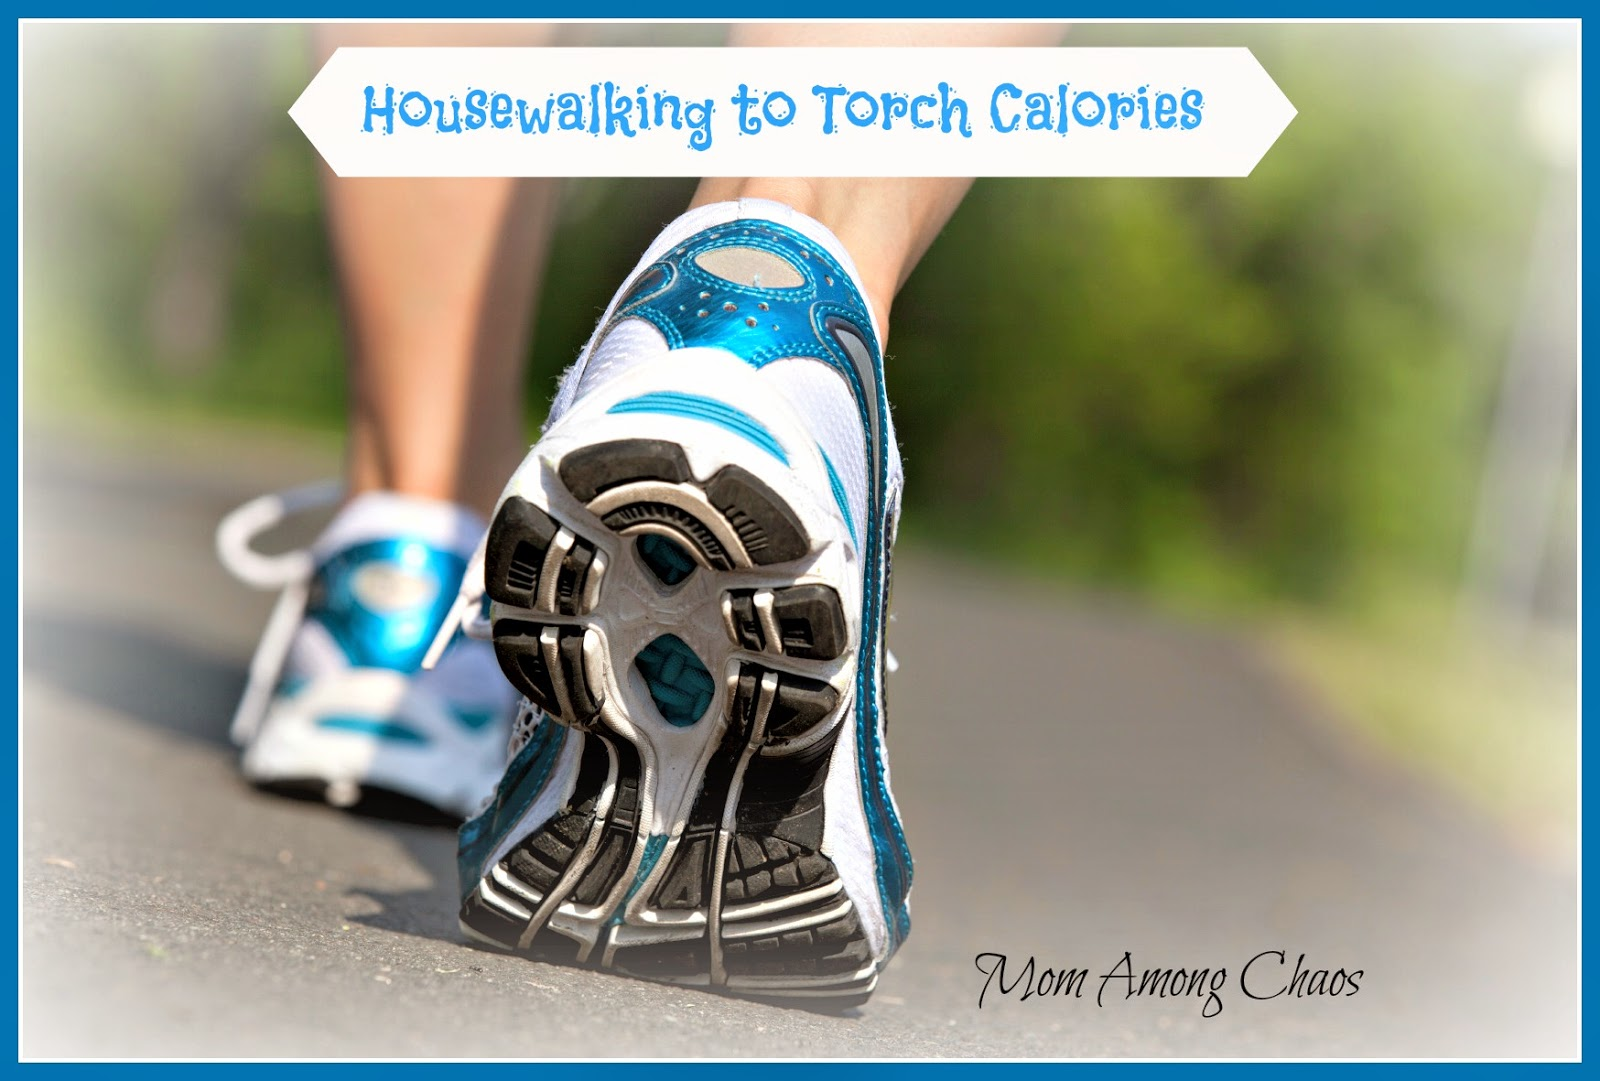 burning calories, cold weather, exercise, fitness, health, healthy, house walking, Michigan, Mom